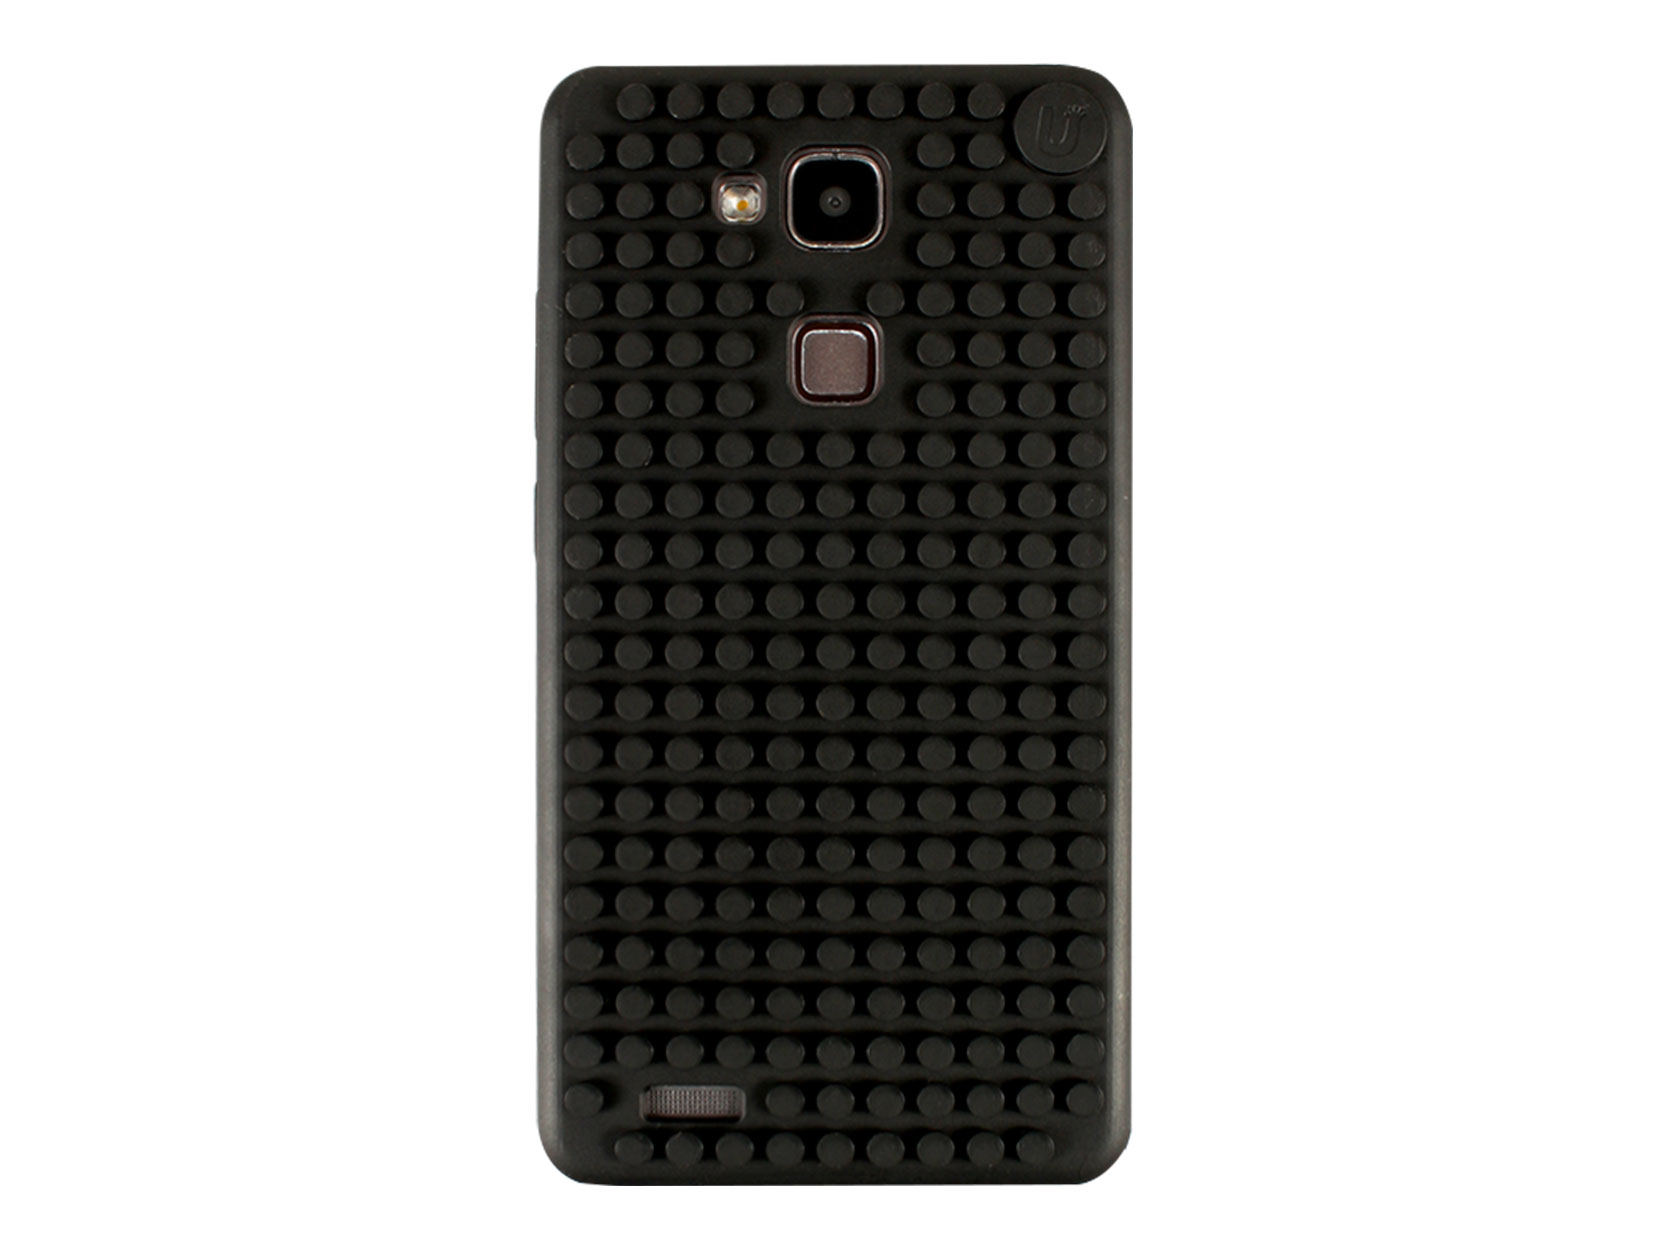 COVER P/CELULAR WY-C010 HUAWEI ASCEND NOTE 7 NEGRO